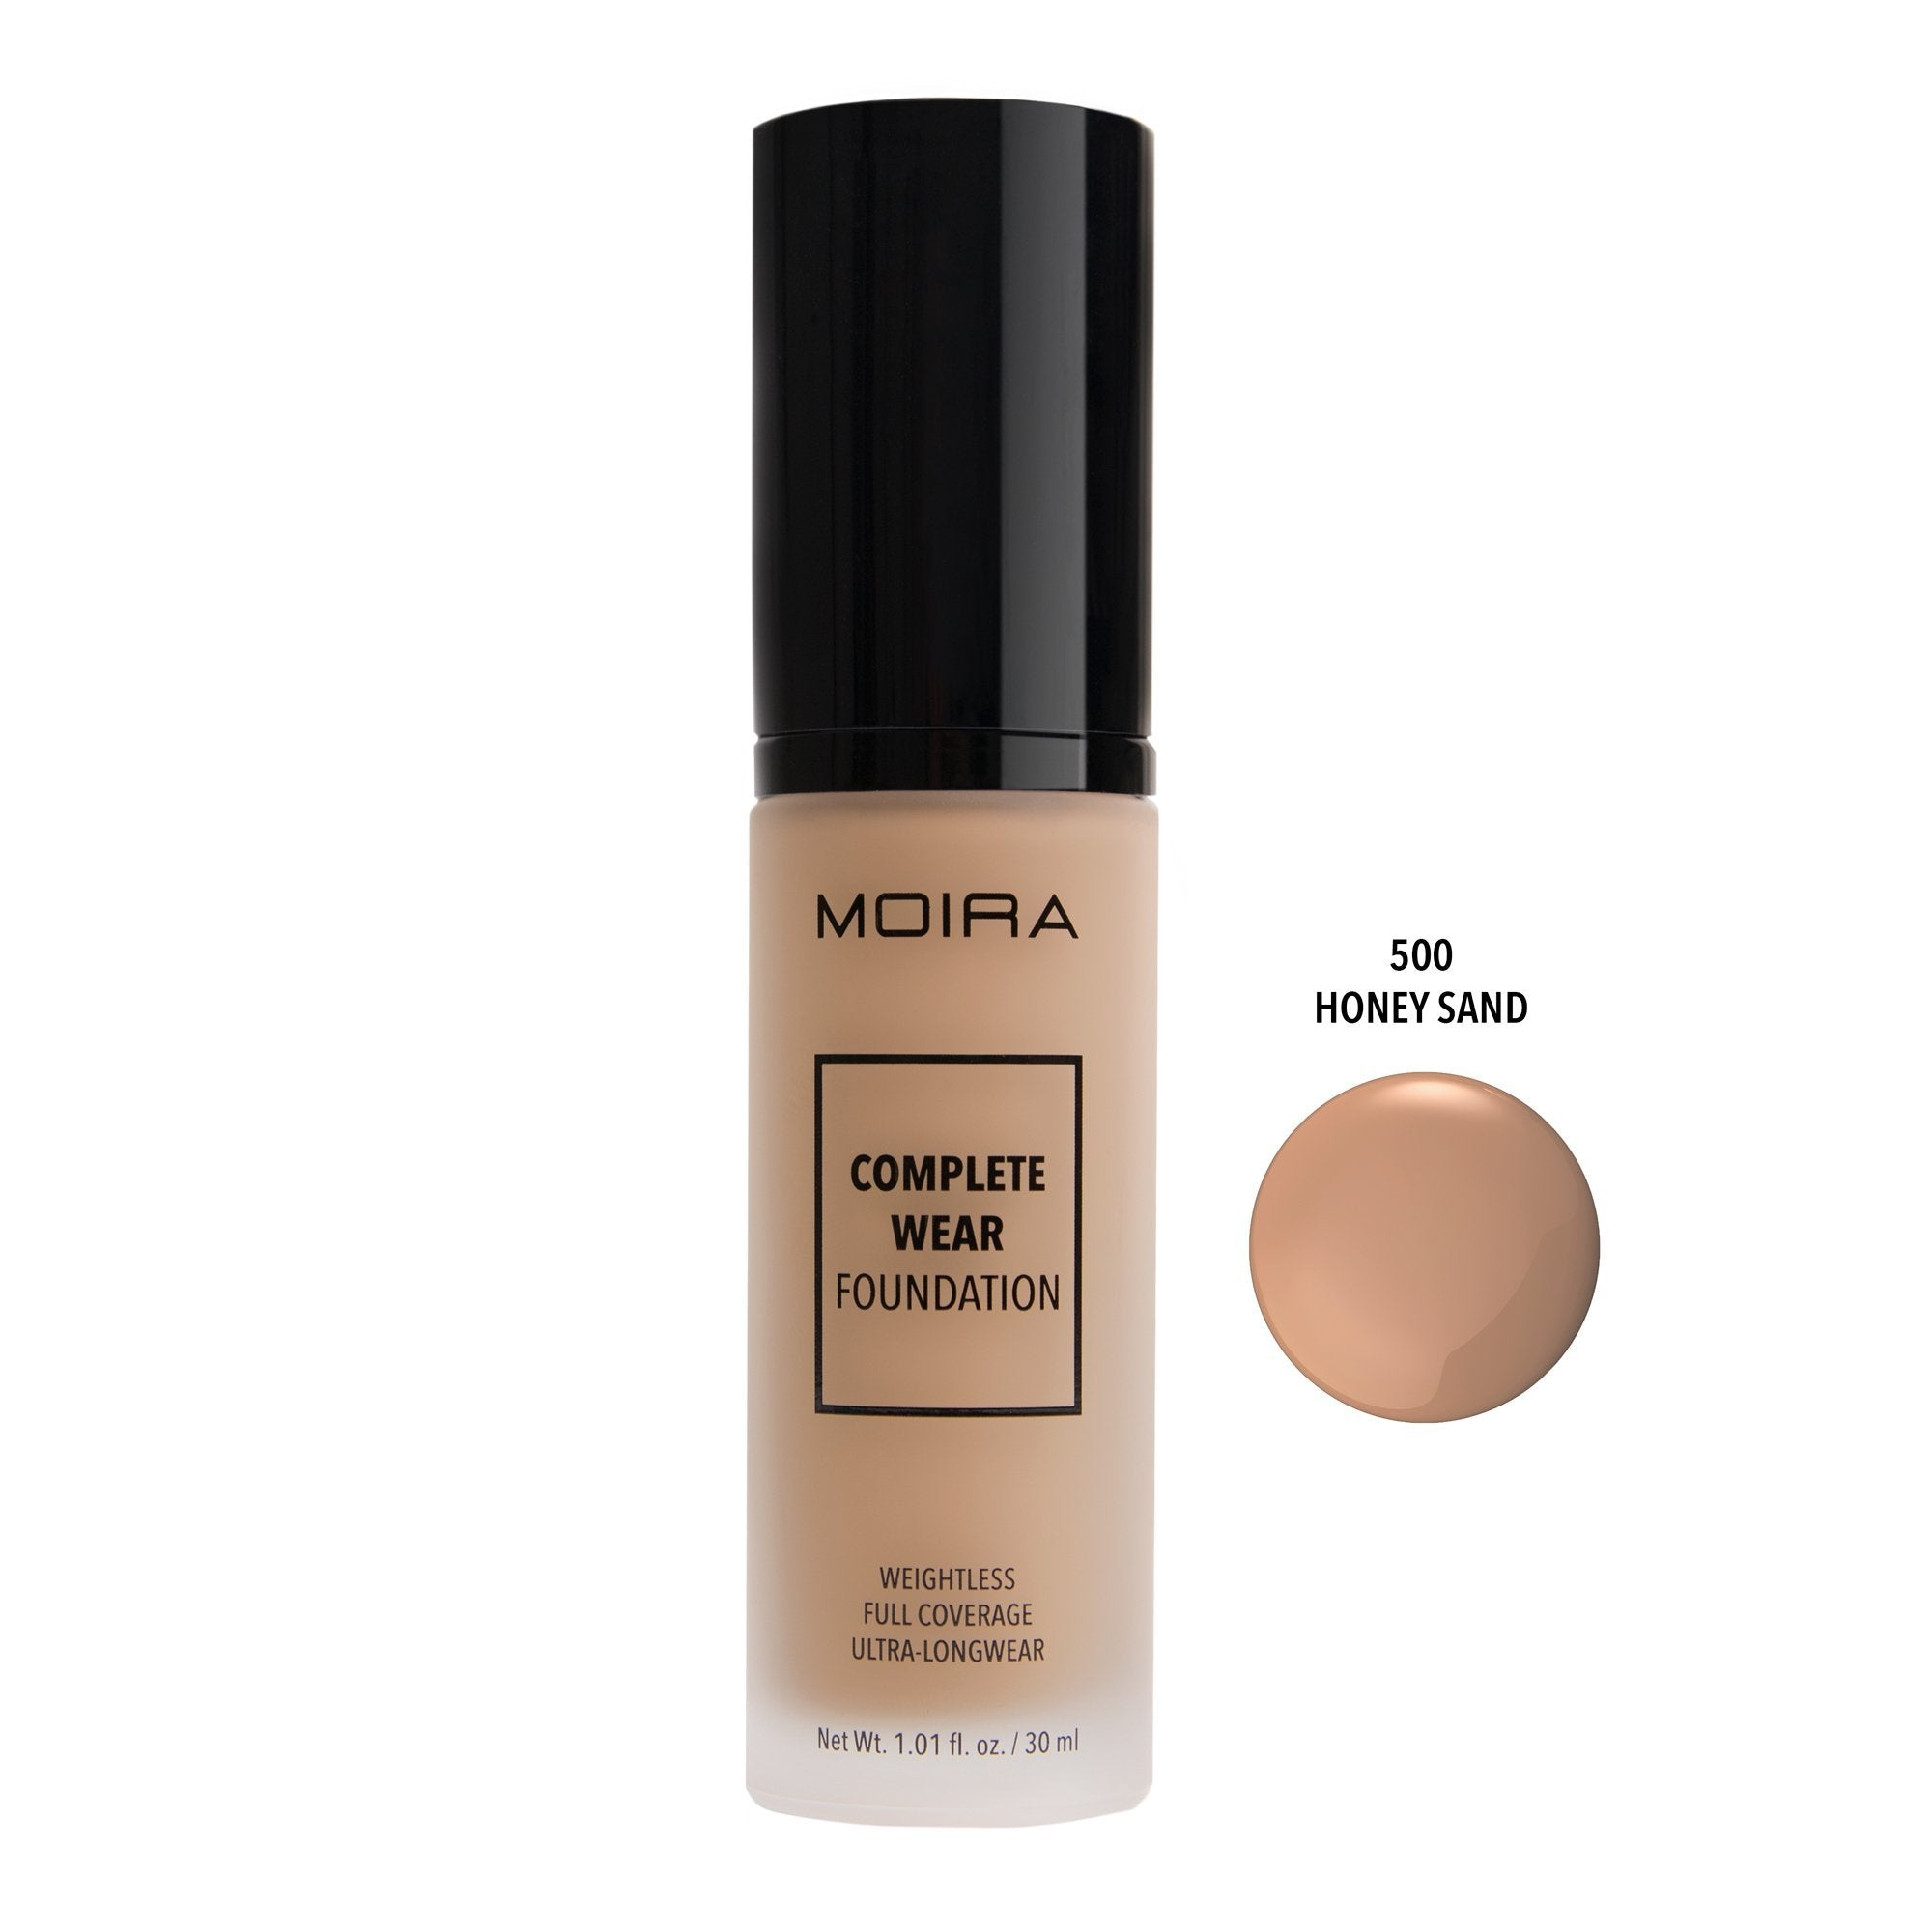 COMPLETE WEAR FOUNDATION - 500 Honey Sand